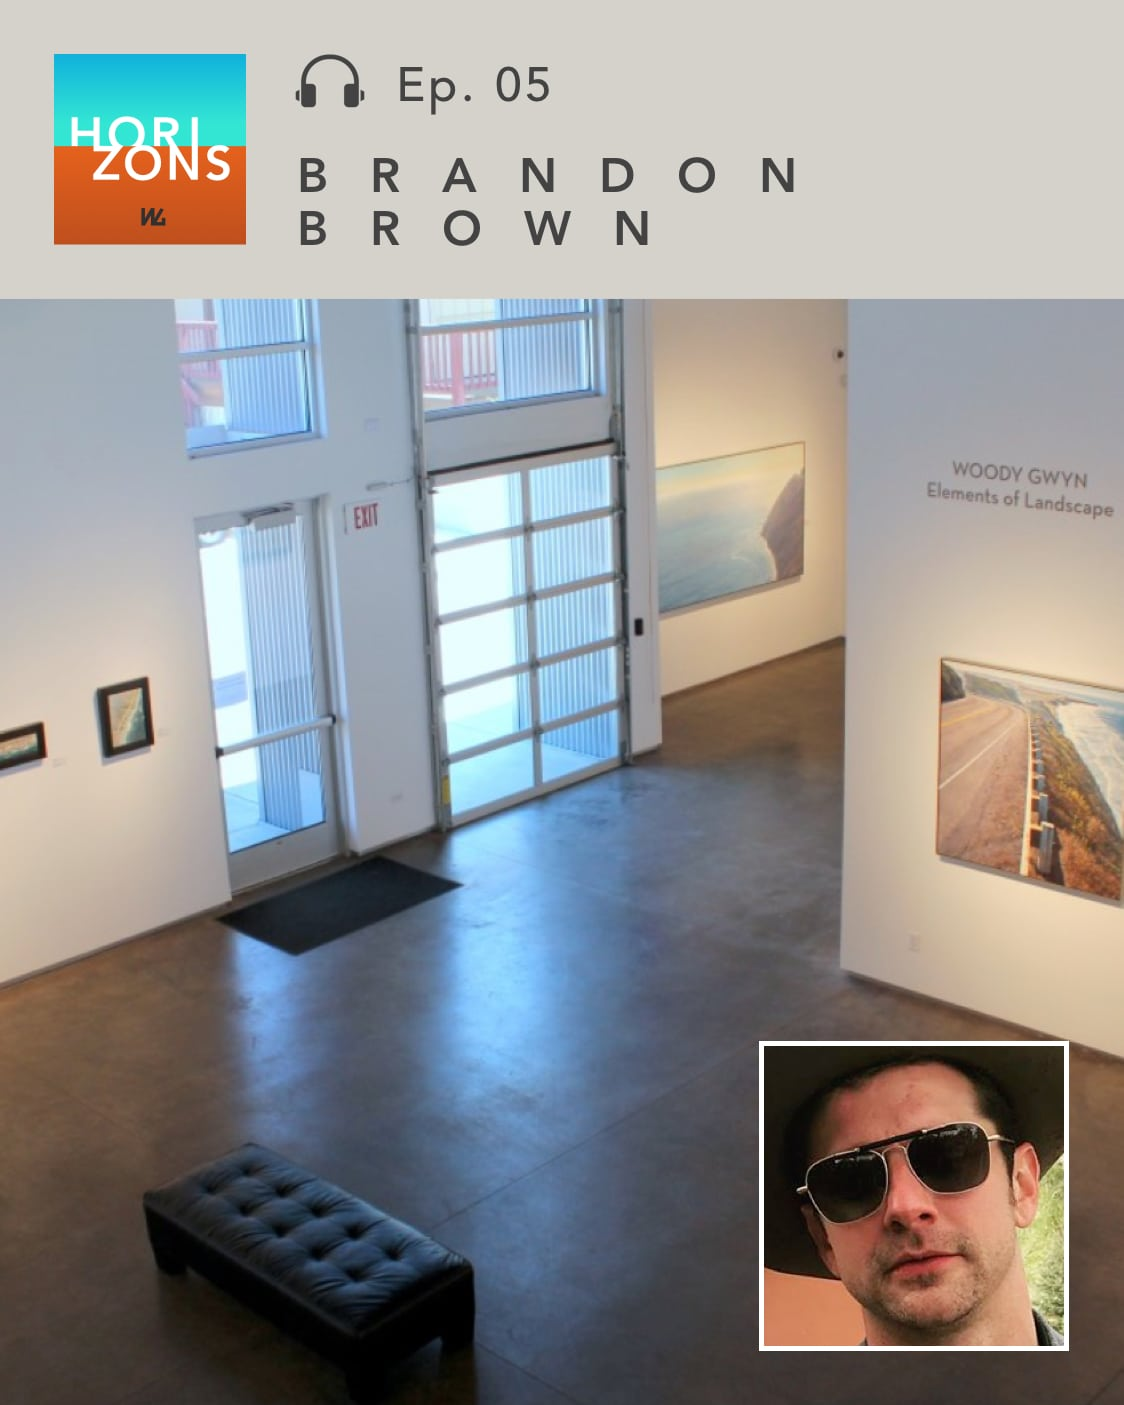 Art dealer Brandon Brown on Horizons by Western Gallery